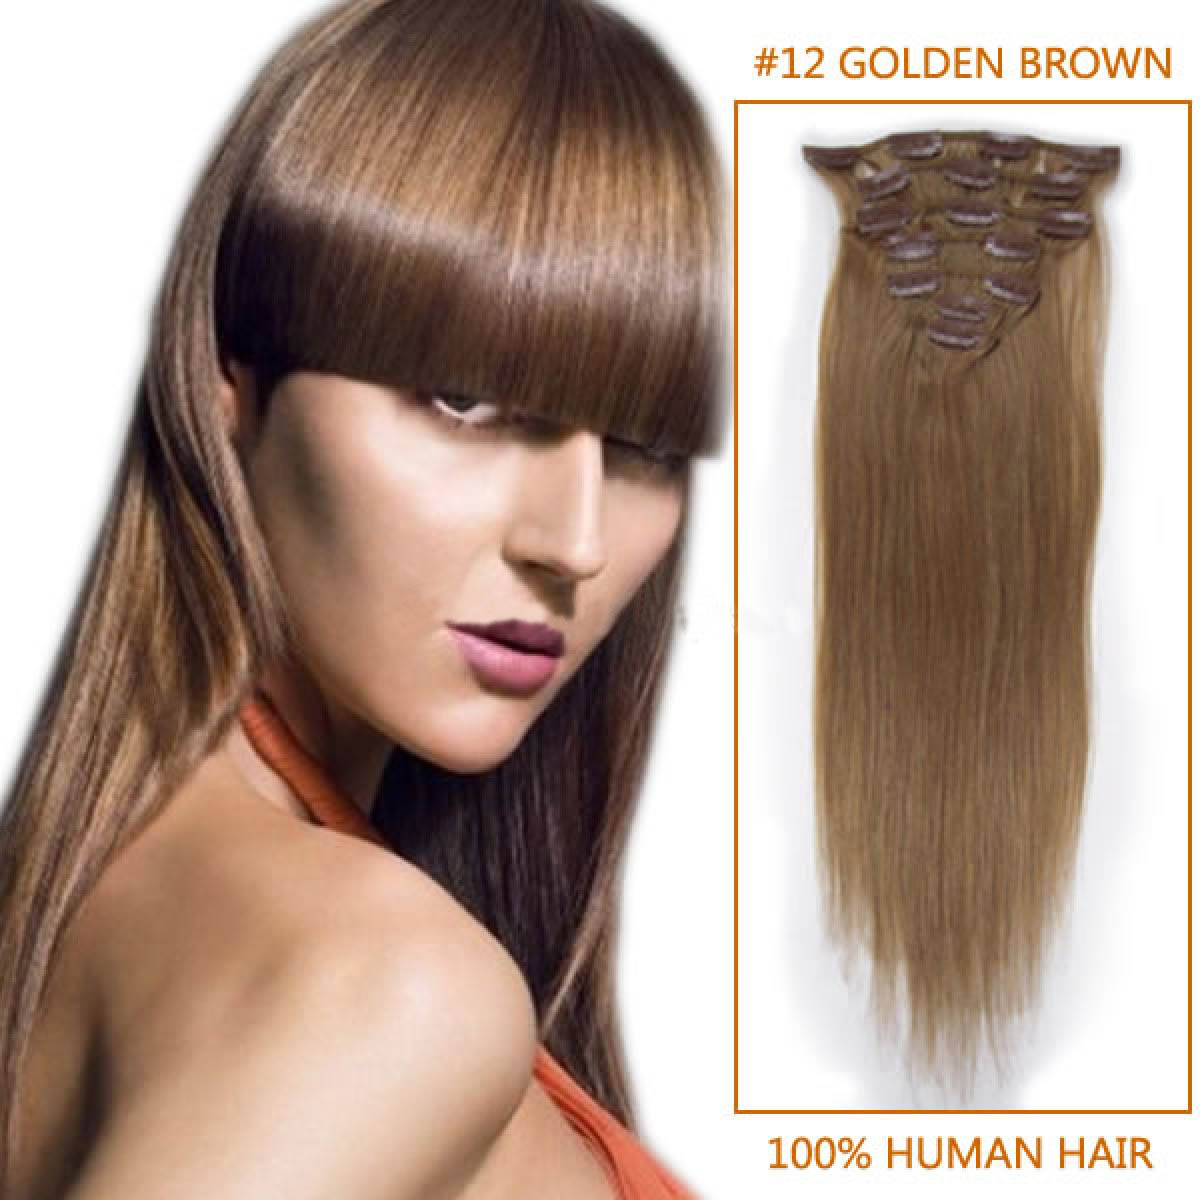 22 Inch 12 Golden Brown Clip In Human Hair Extensions 11pcs